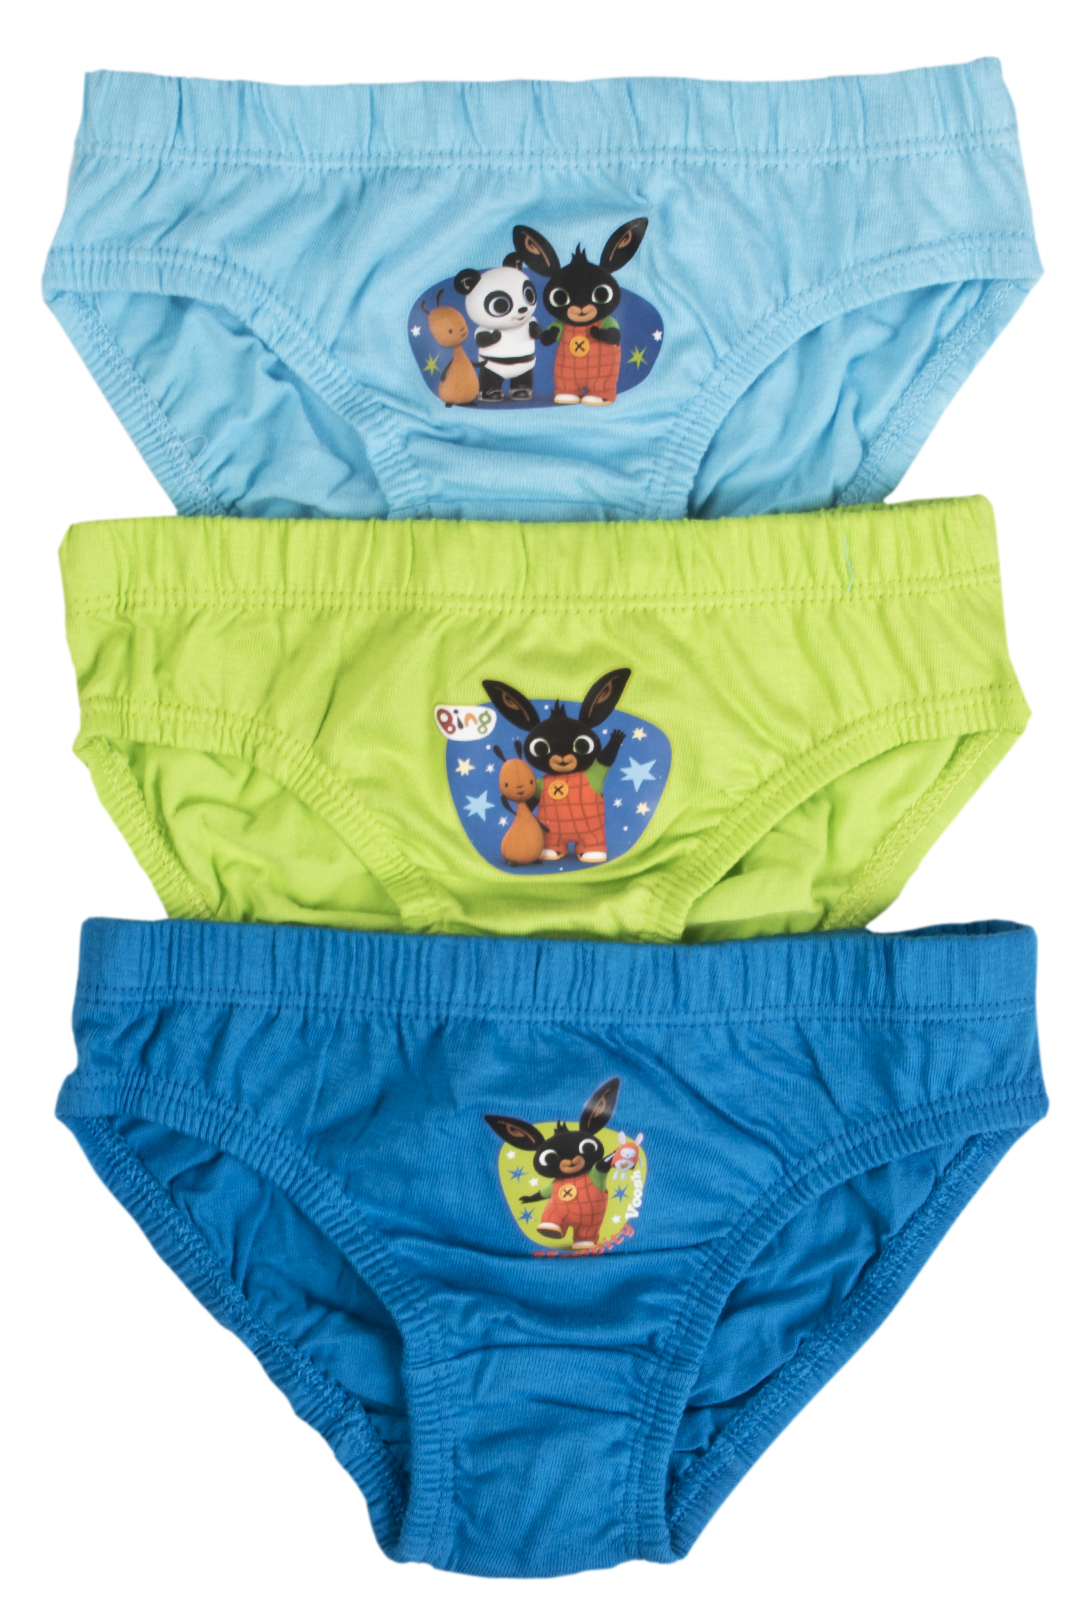 3 Pairs Boys Character Underwear 100% Cotton Briefs ...